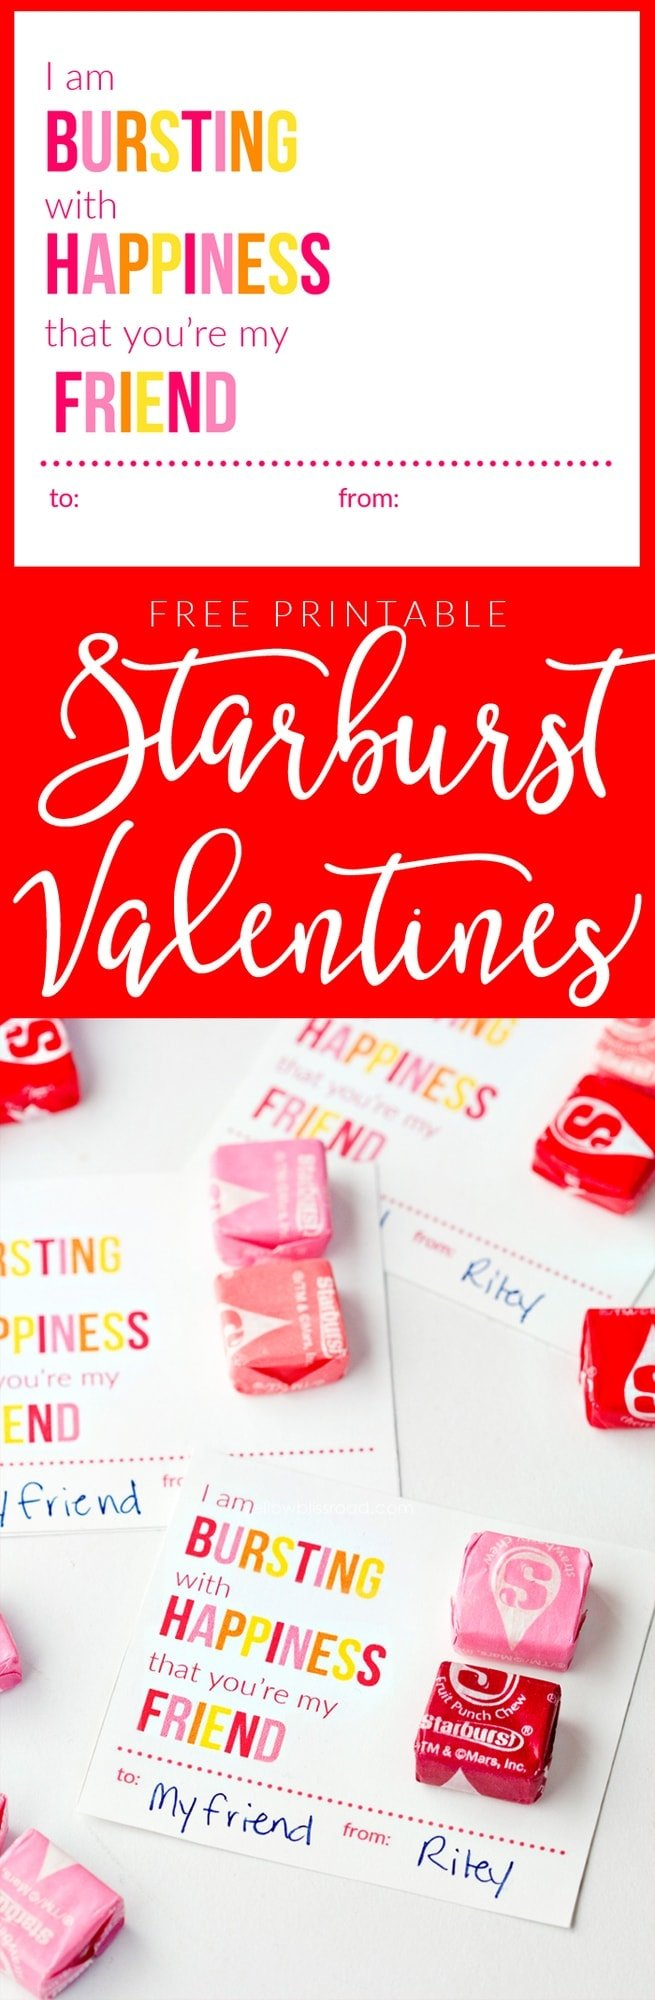 I'm Bursting with Happiness Free Printable Starburst Valentine Cards